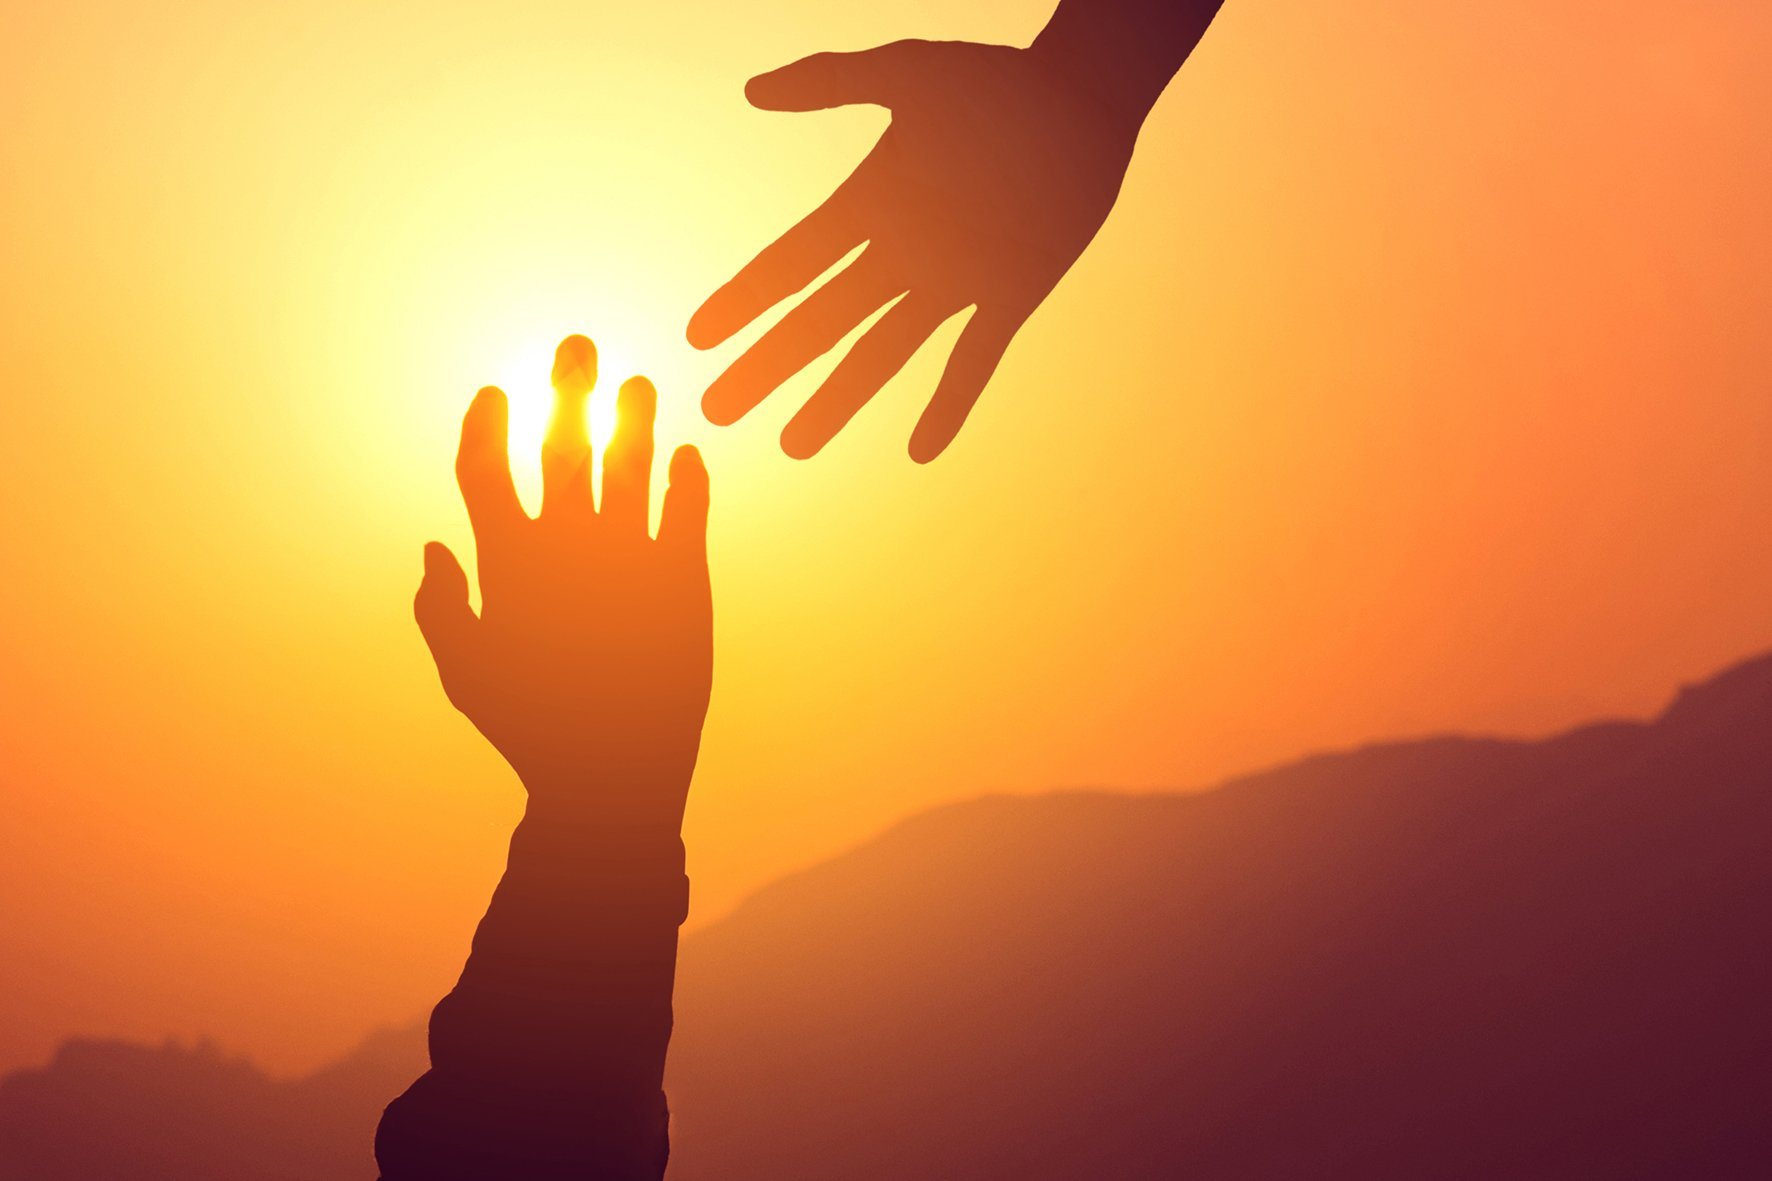 Reaching hands_shutterstock_sml